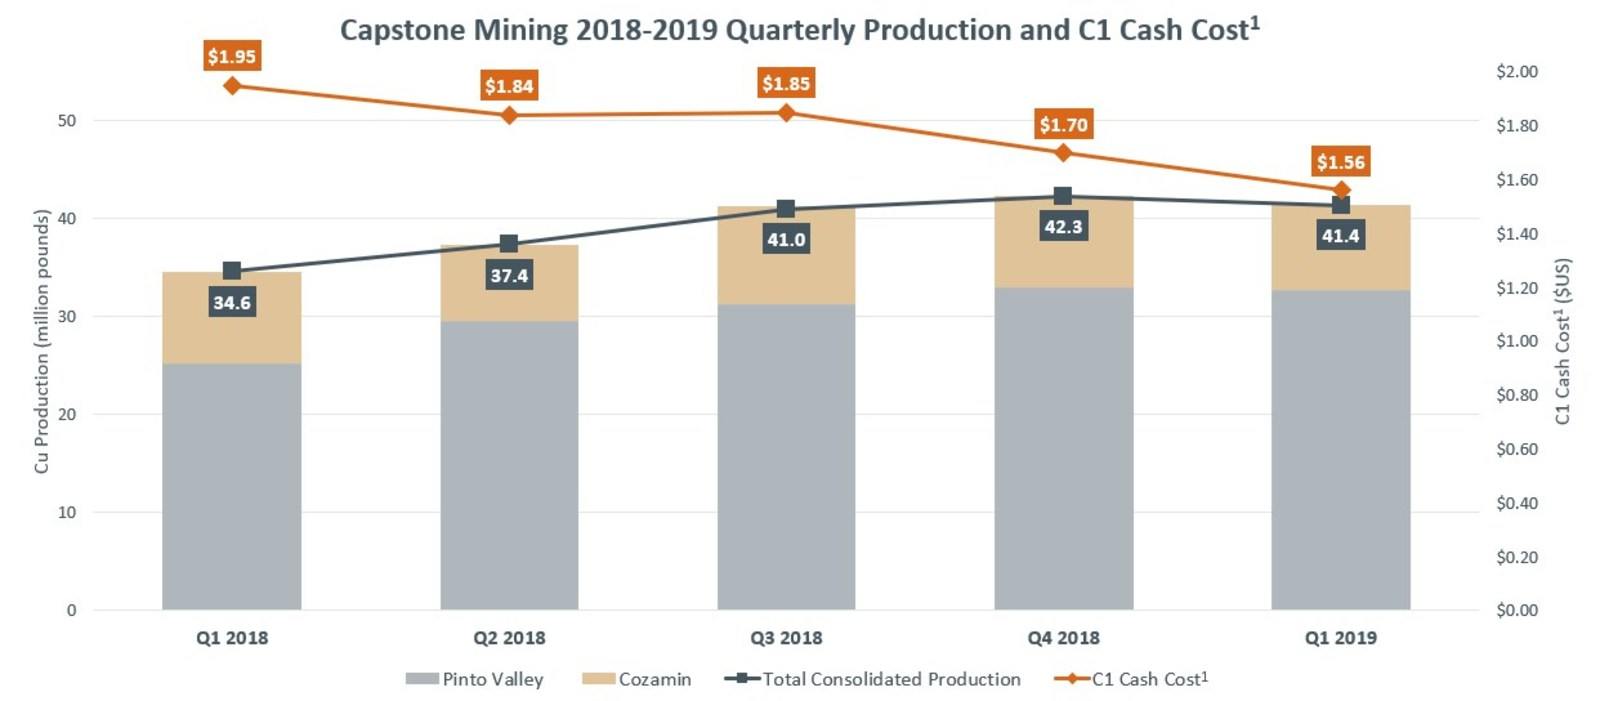 Capstone Mining 2018-2019 Quarterly Production and C1 Cash Cost, see News Release of April 24, 2019 for full details.